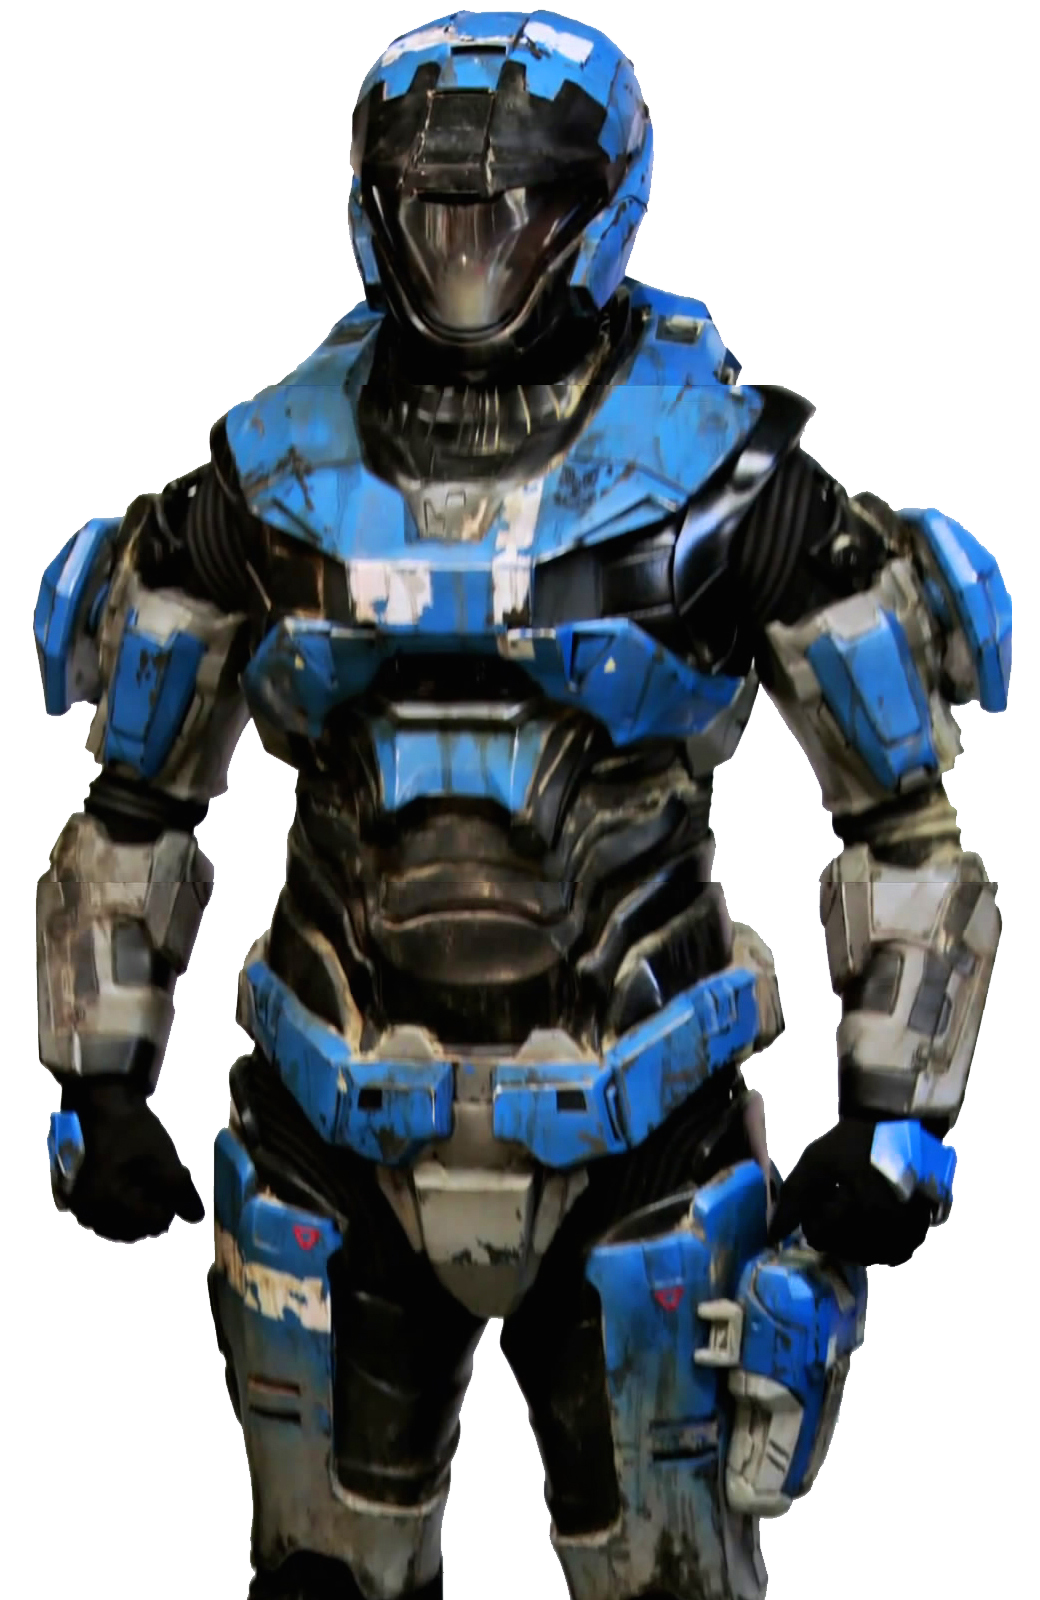 Kats Arm From Halo Reach Halo 5 Guardians Forums